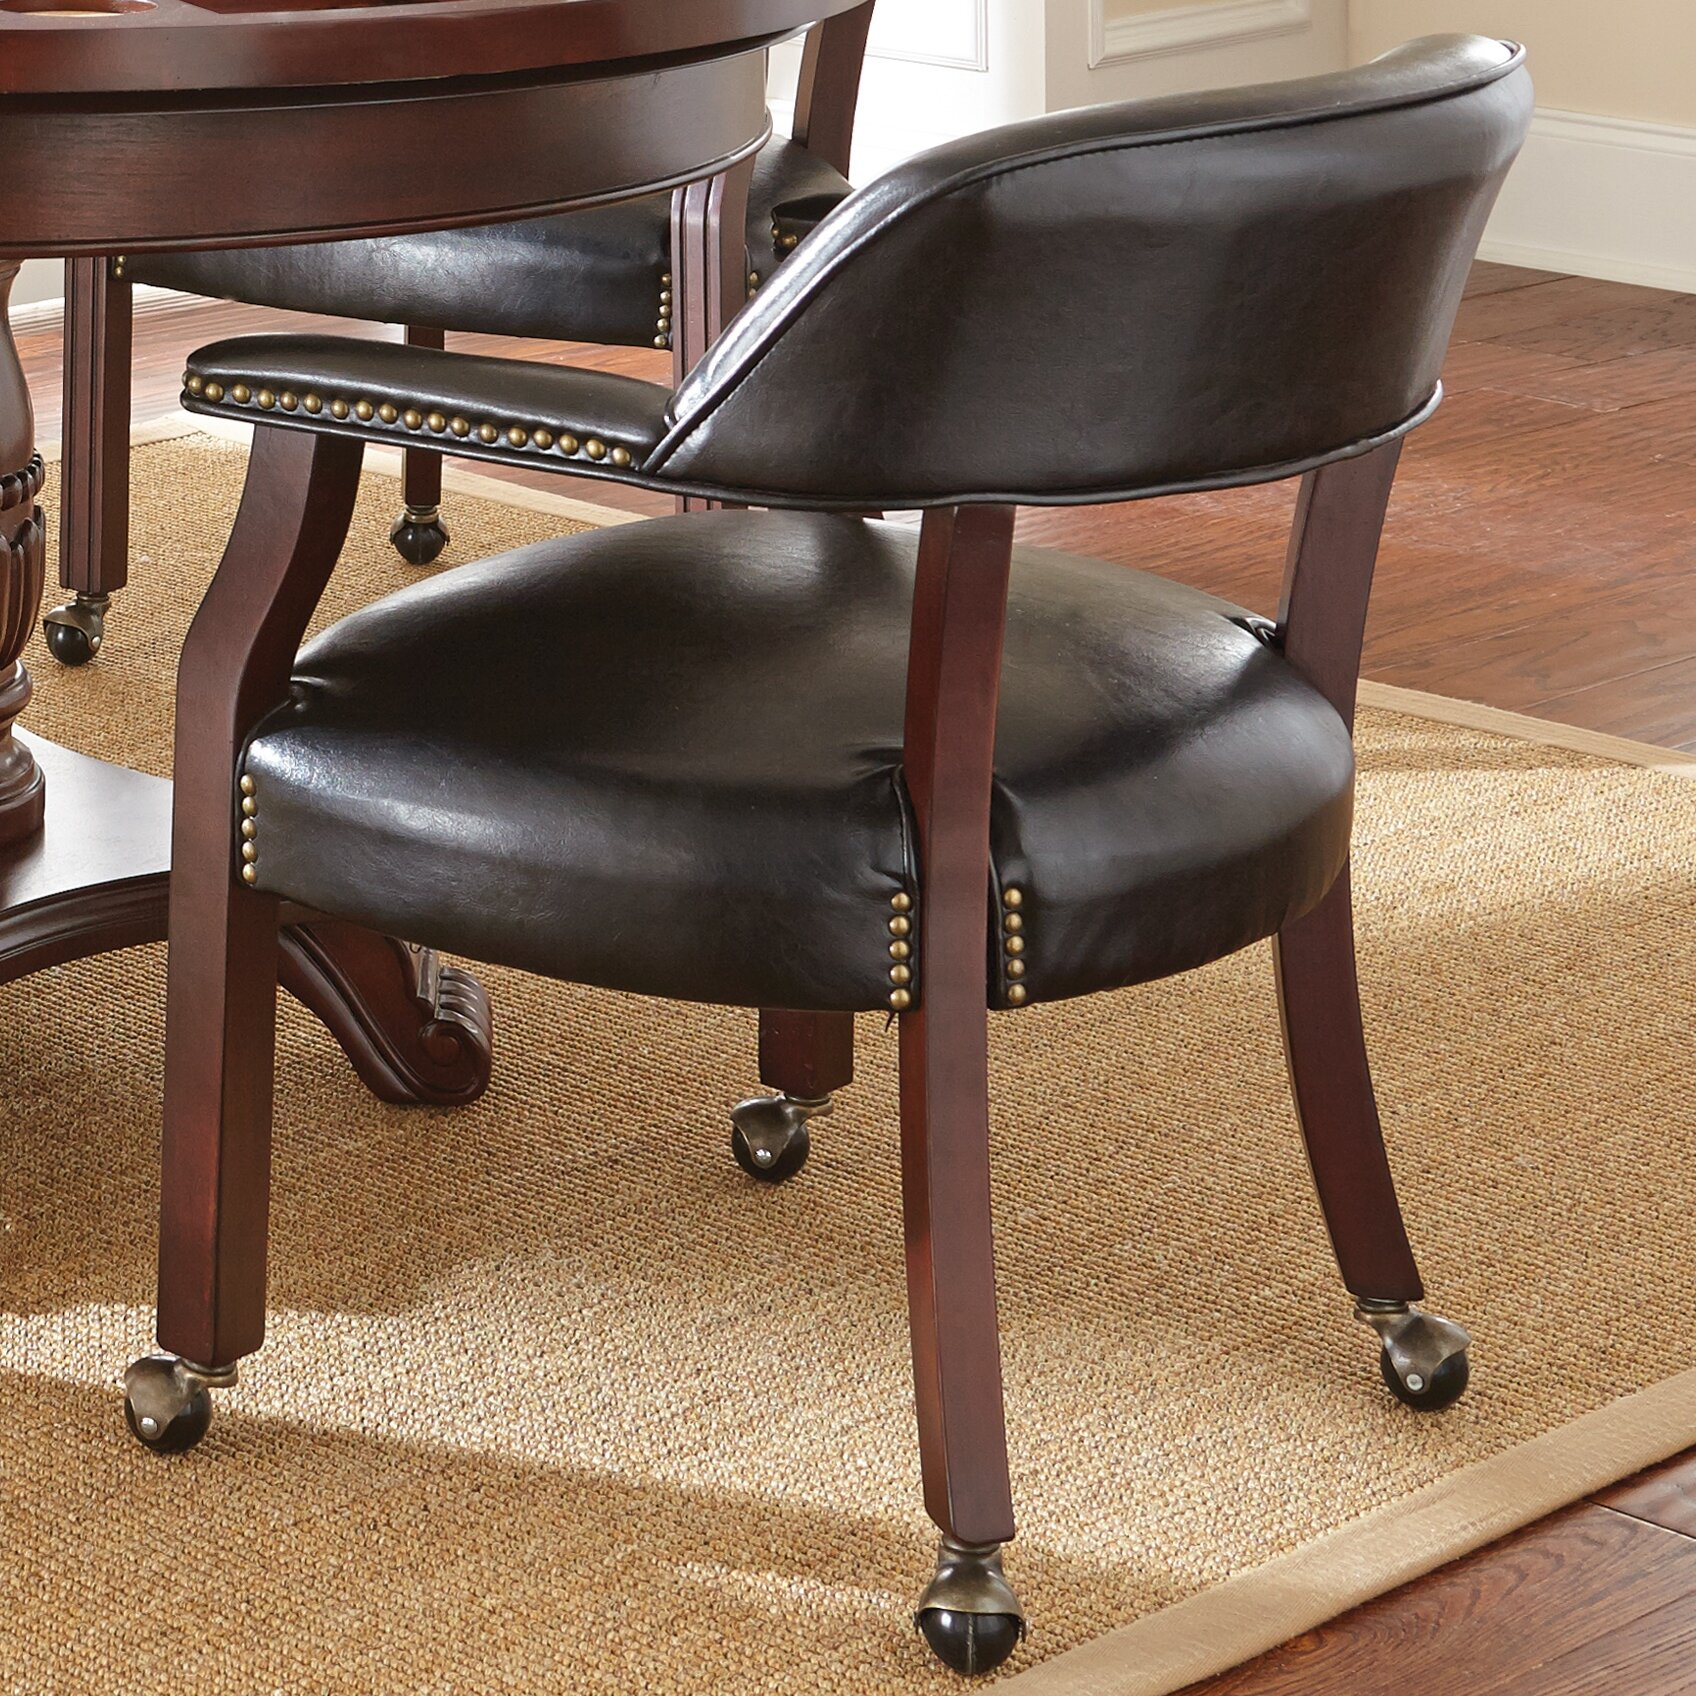 Dining Room Chairs With Arms And Casters Casters Kitchen Amp Dining Chairs You39ll Love Wayfair